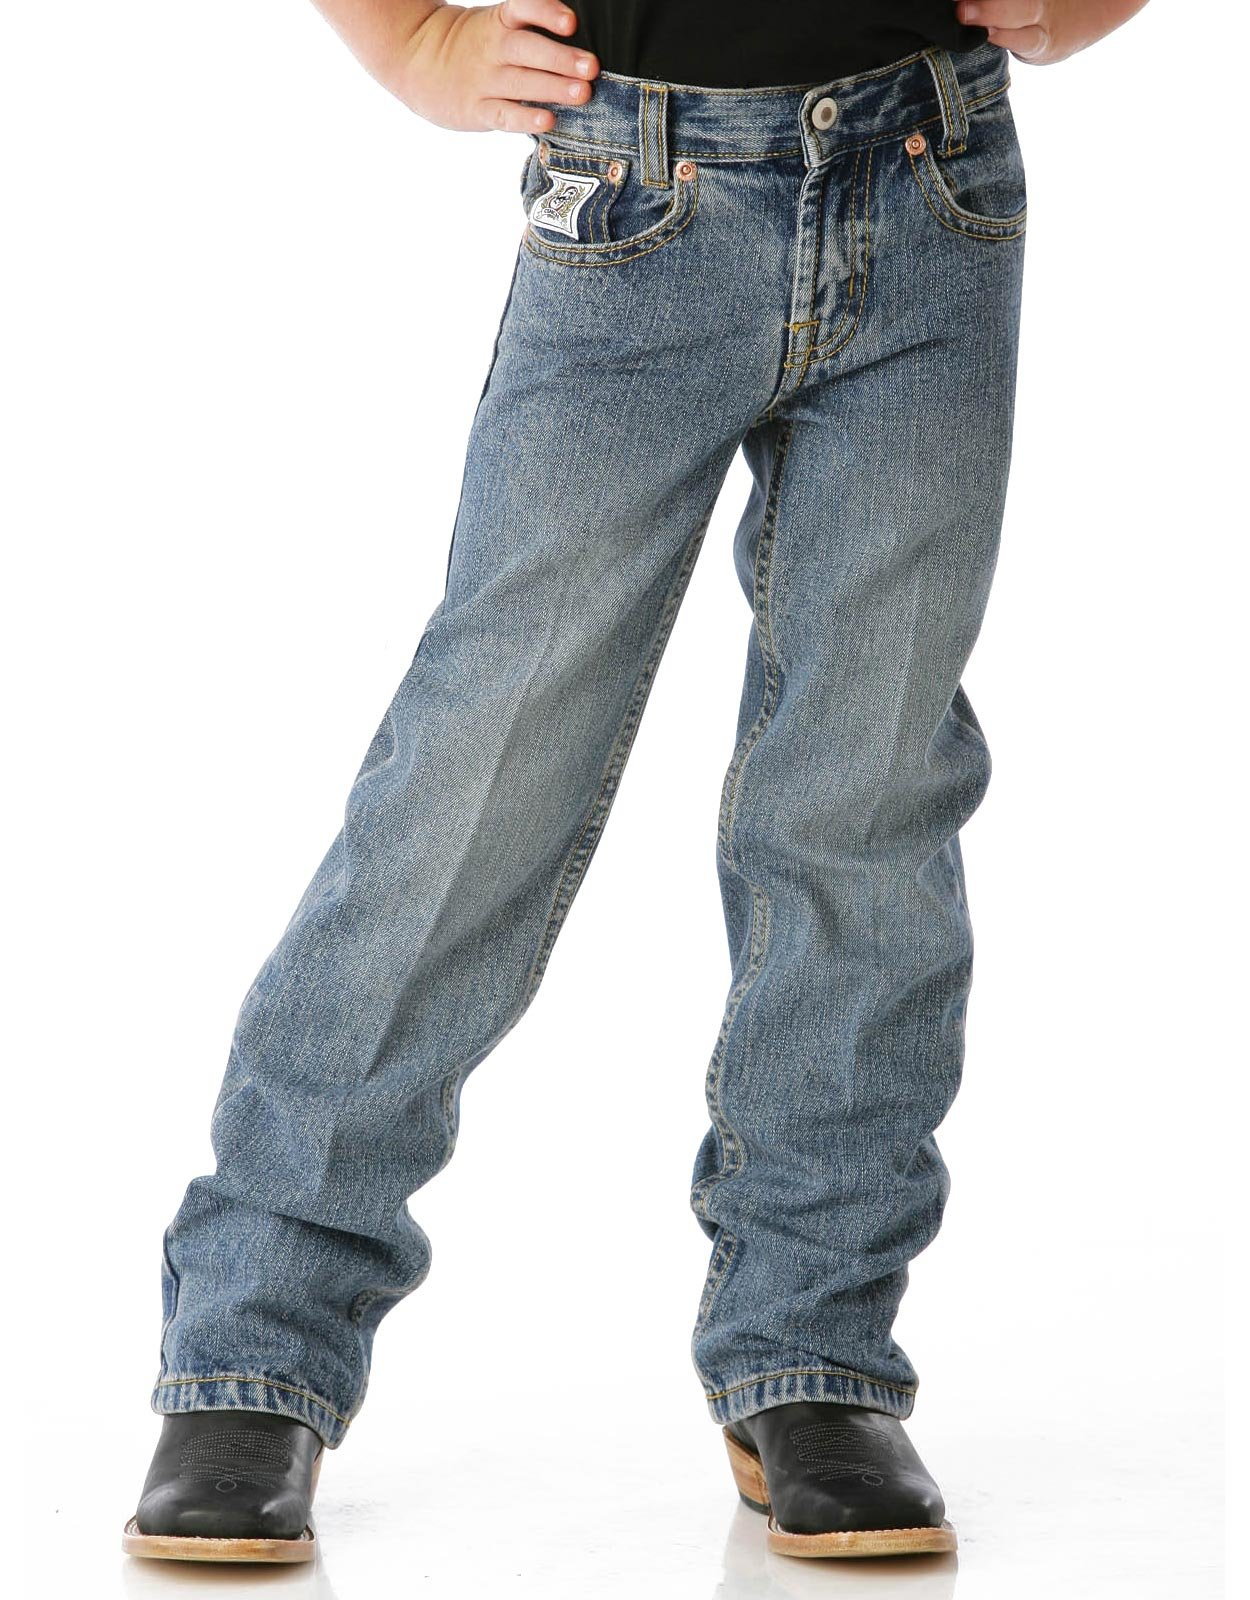 Cinch Boy's White Label Mid Rise Relaxed Fit Straight Leg Jeans (Sizes 8-18) - Light Stonewash